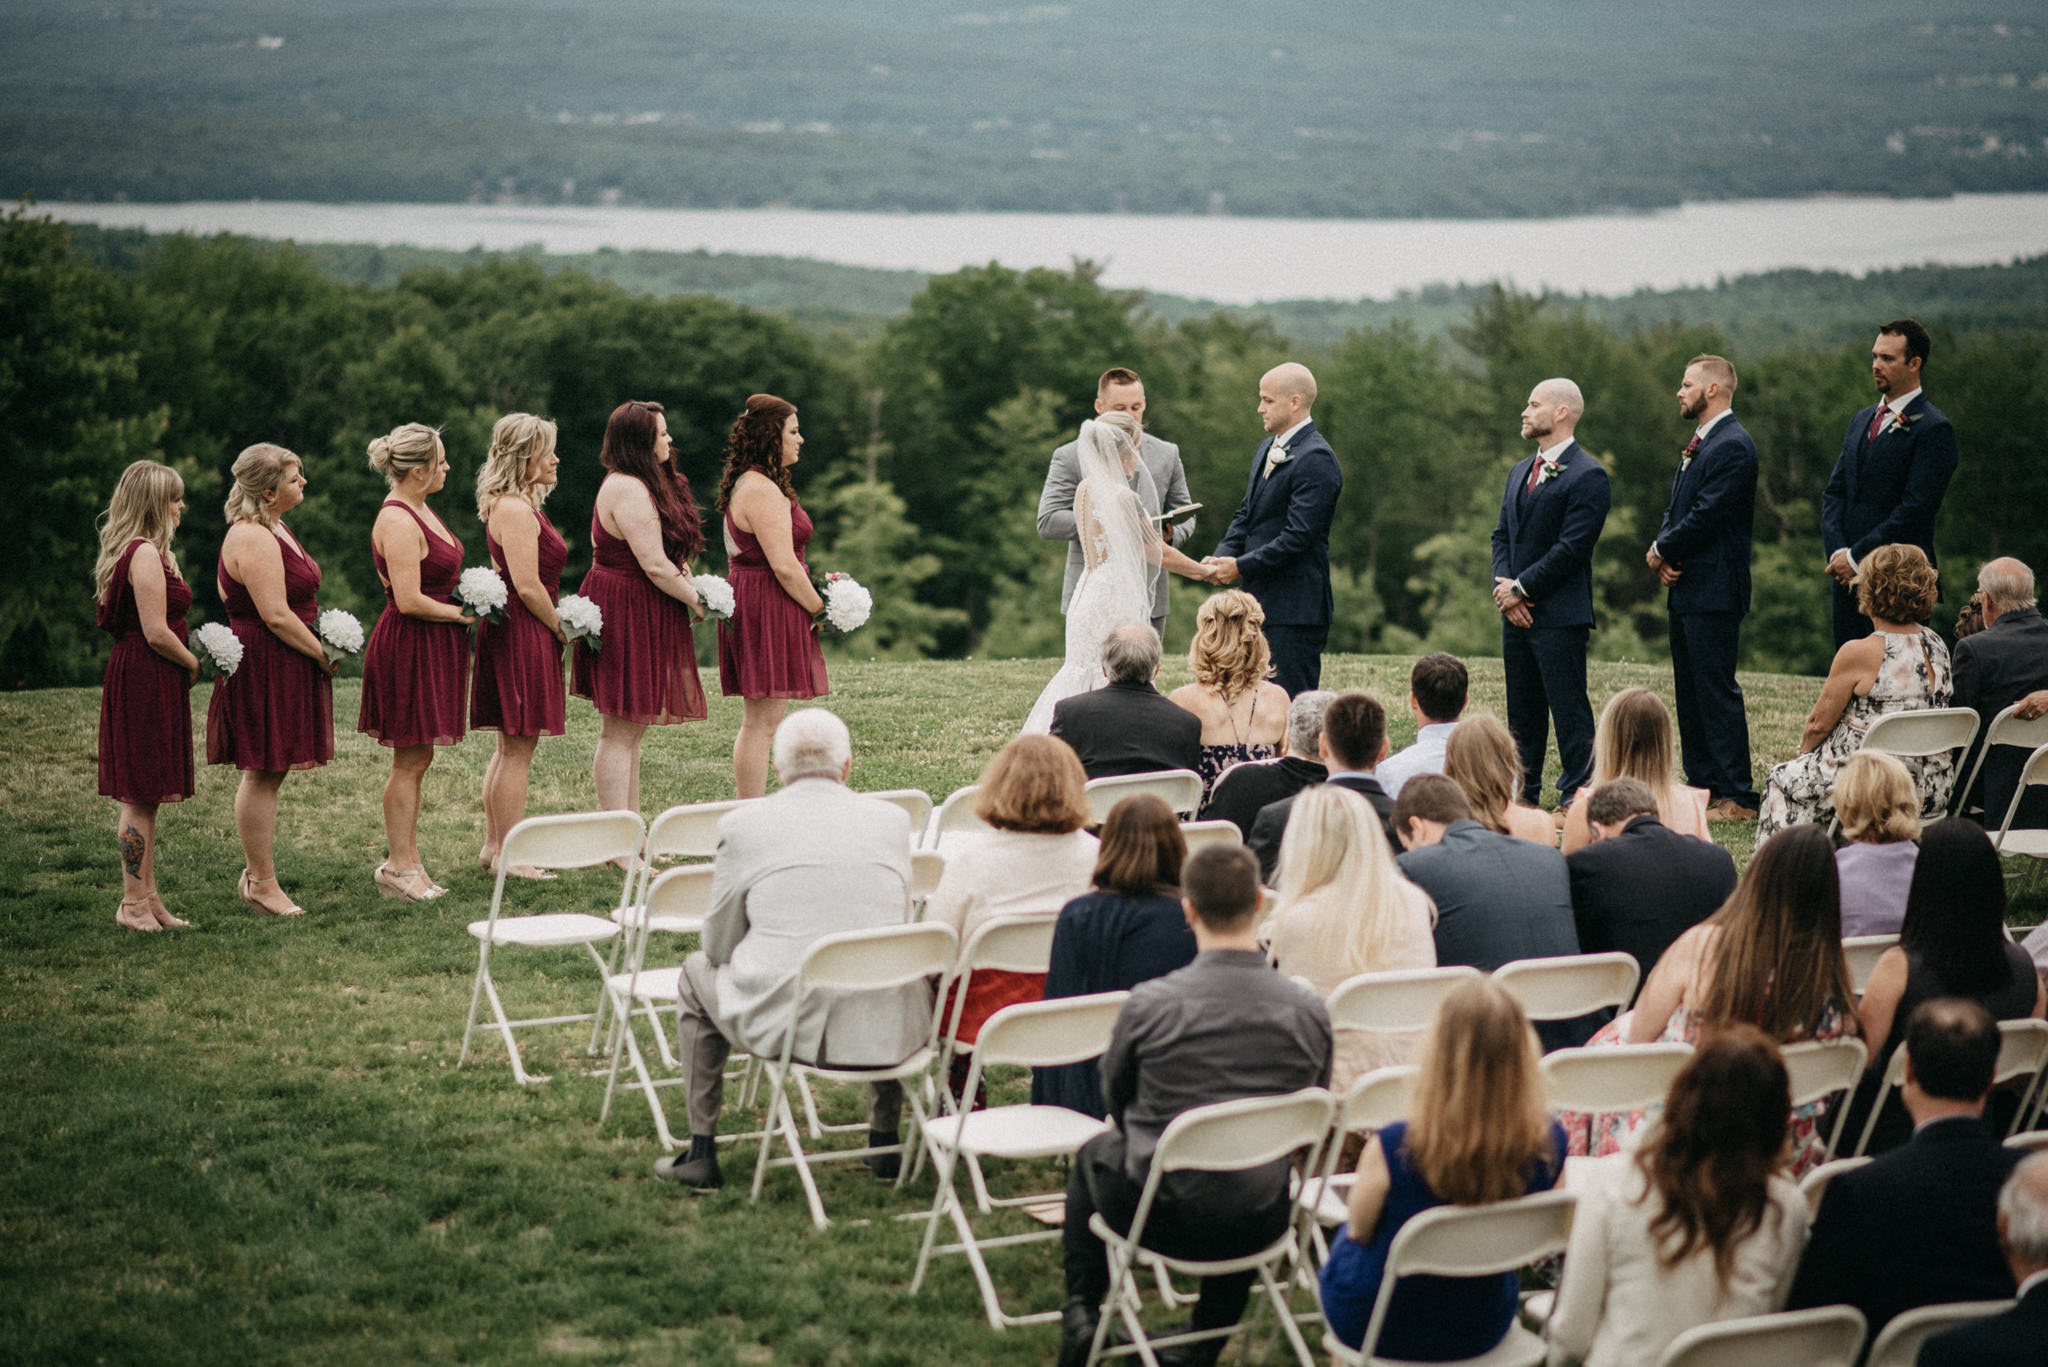 New England wedding views